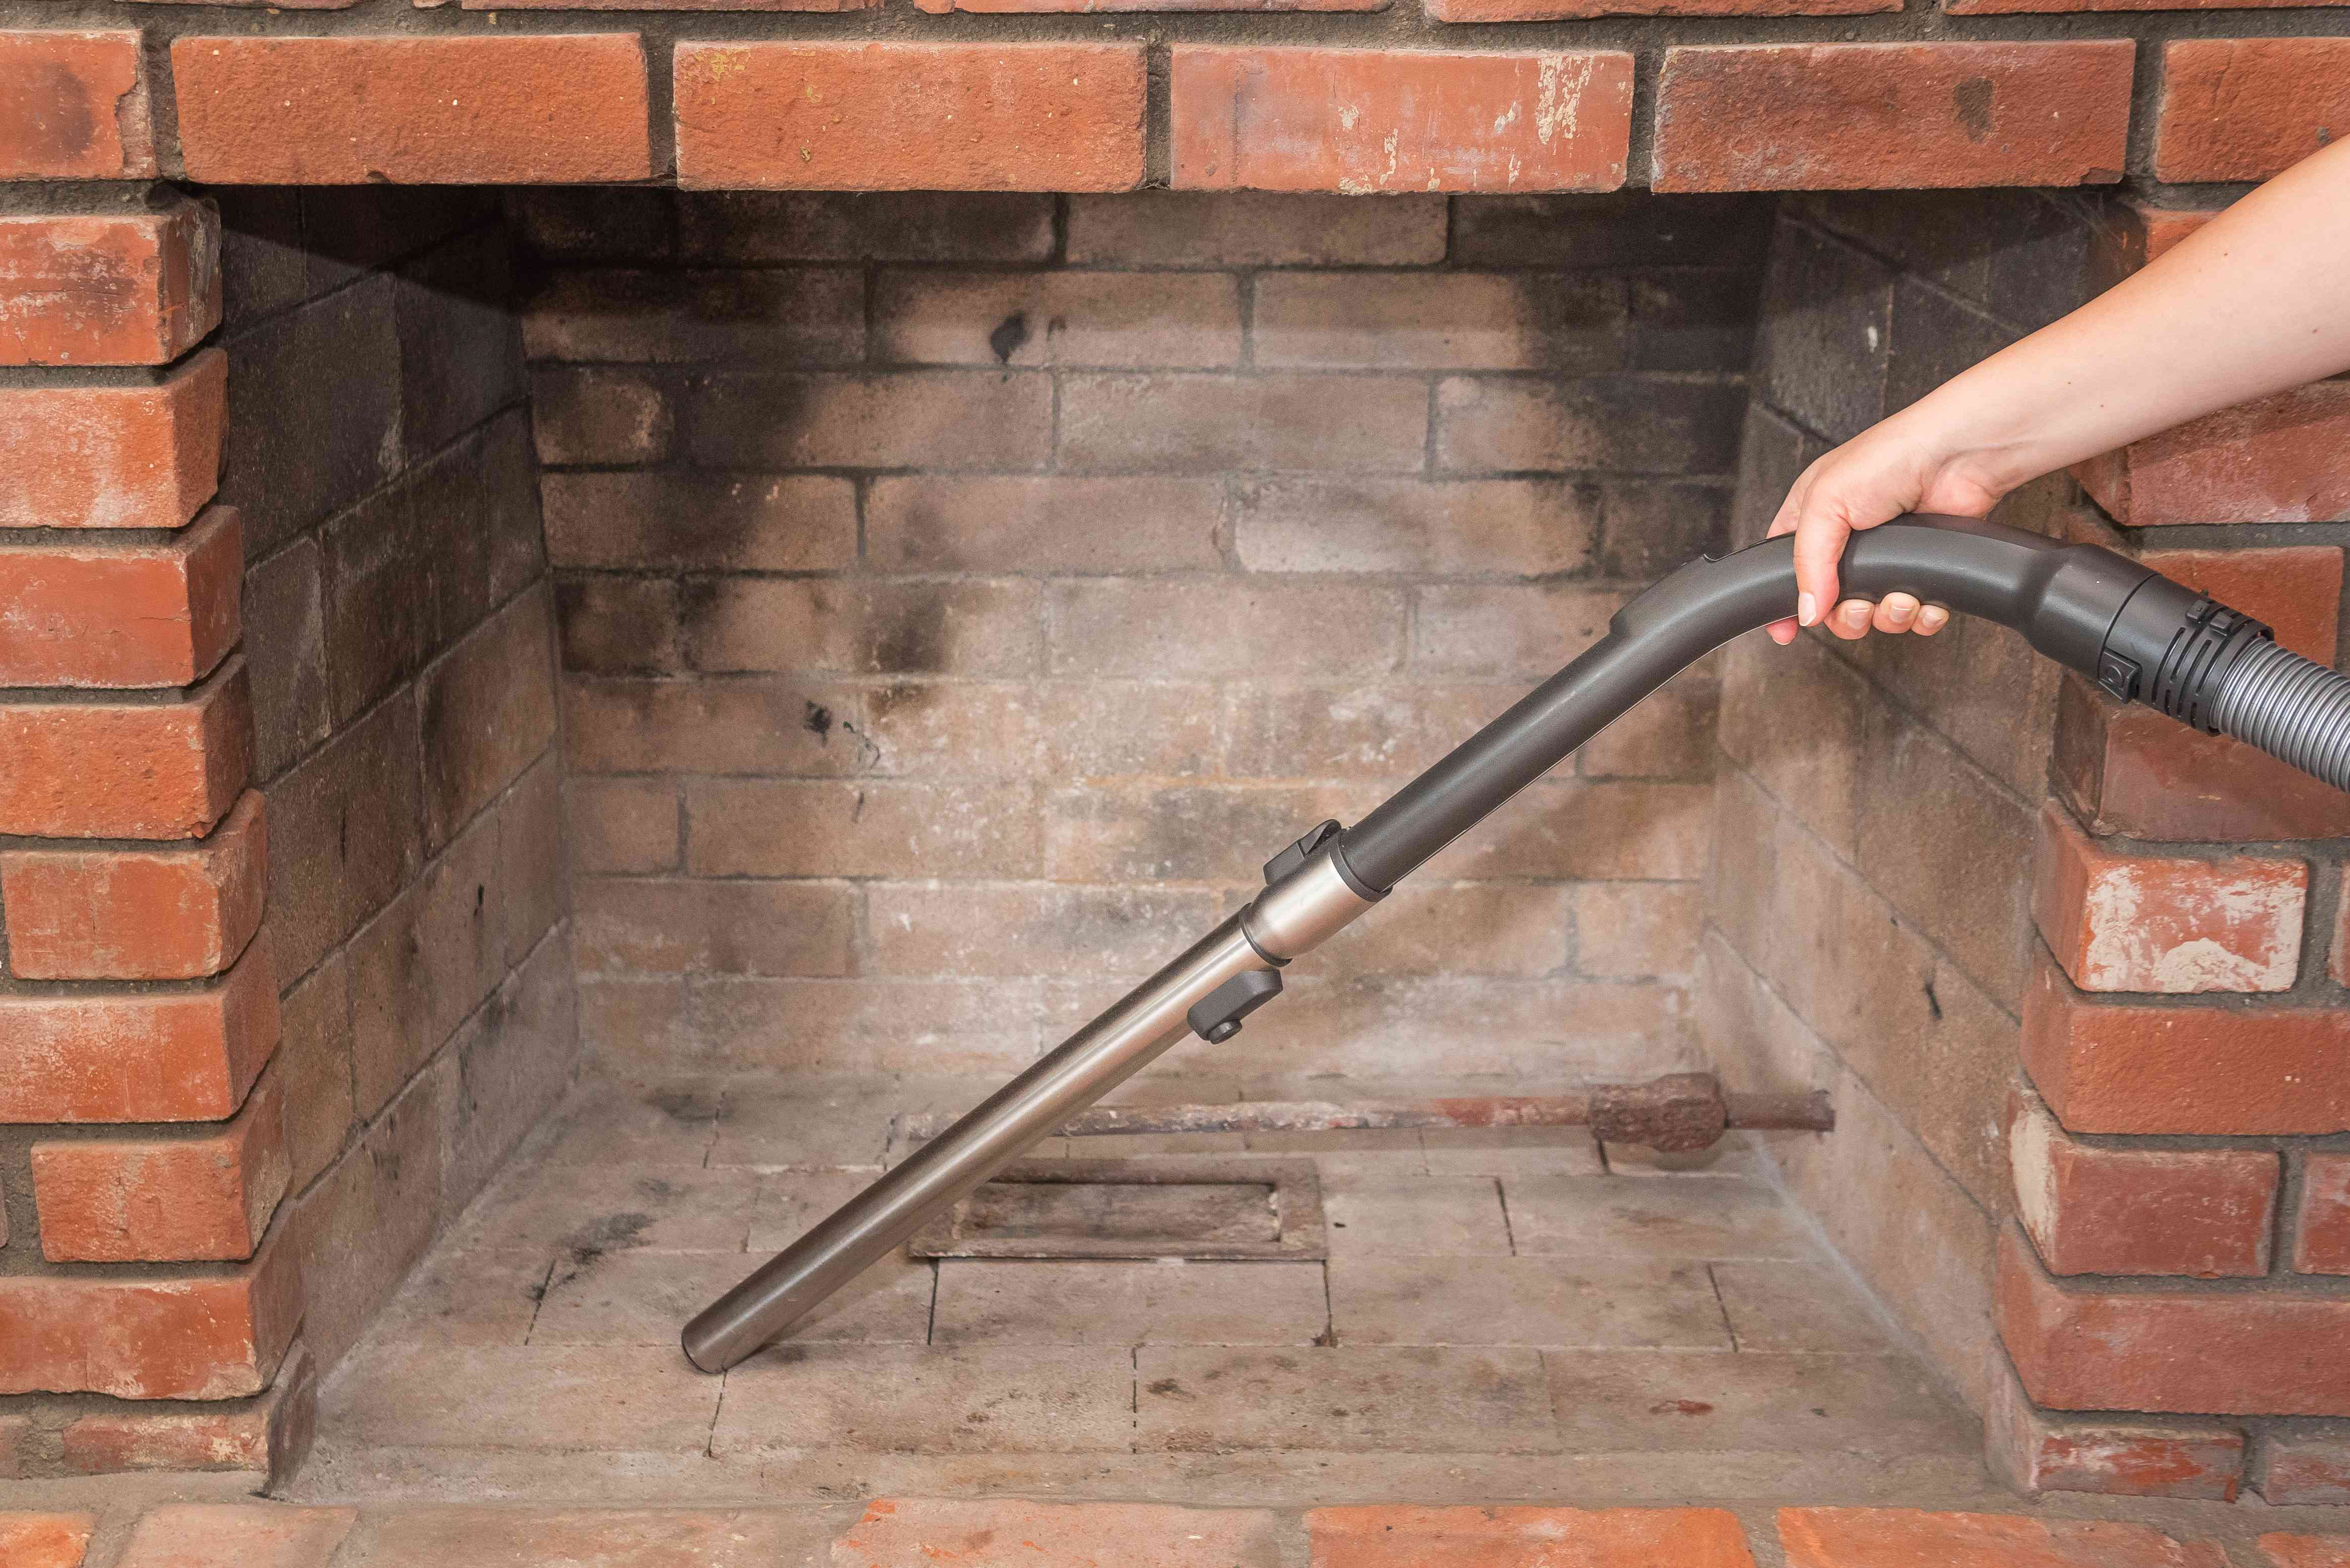 Fireplace soot and dirt vacuumed with long handle